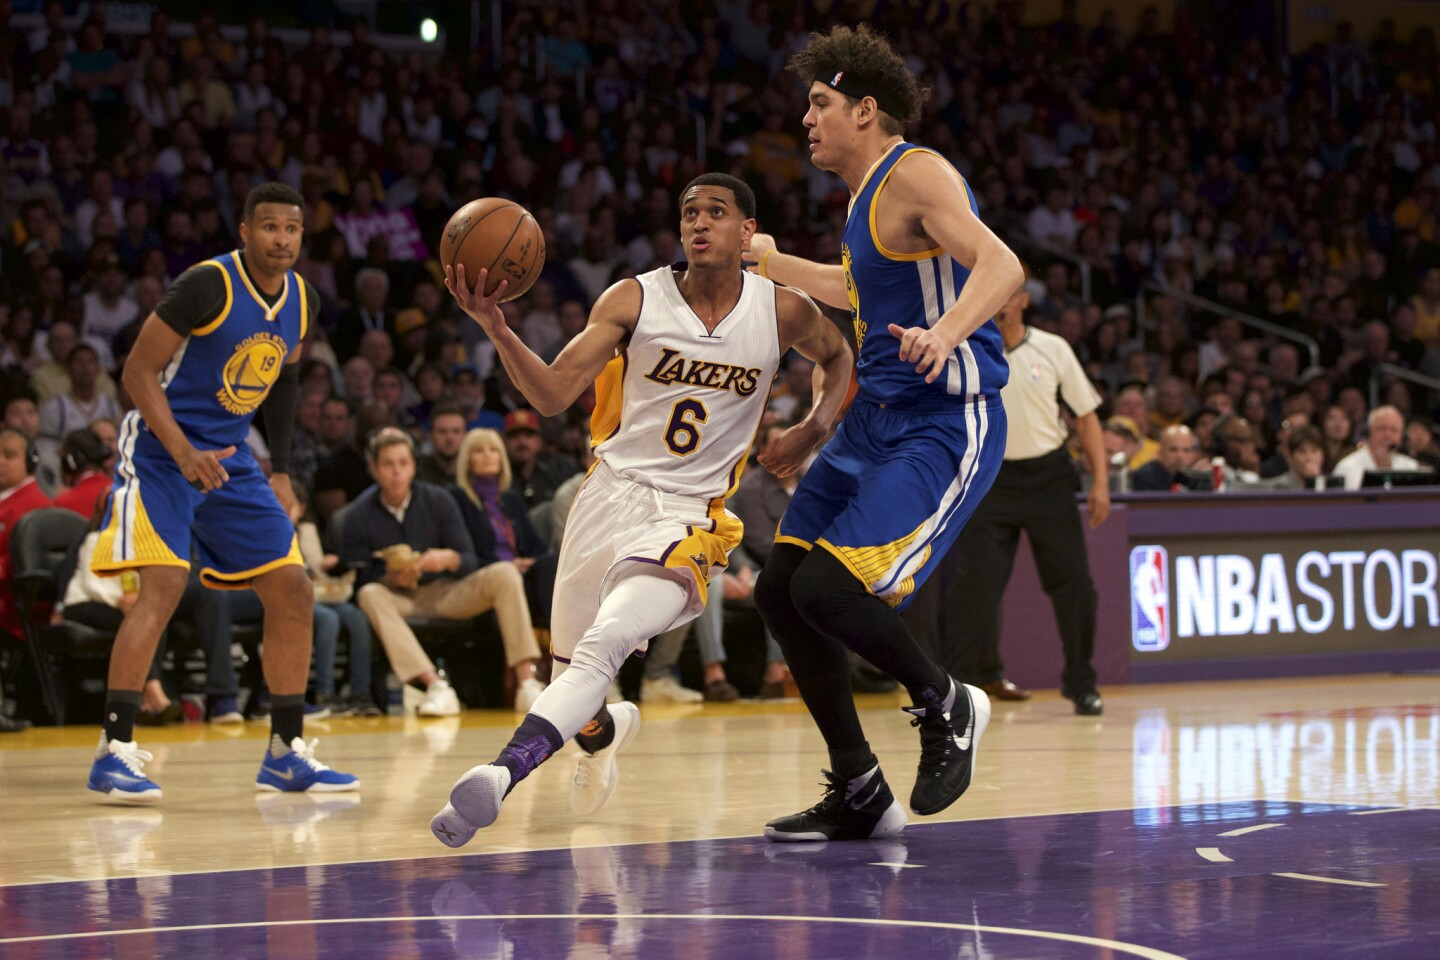 Lakers guard Jordan Clarkson drives past Warriors forward Anderson Varejao during a game March 6 at Staples Center. Clarkson led all scorers with 25 points.